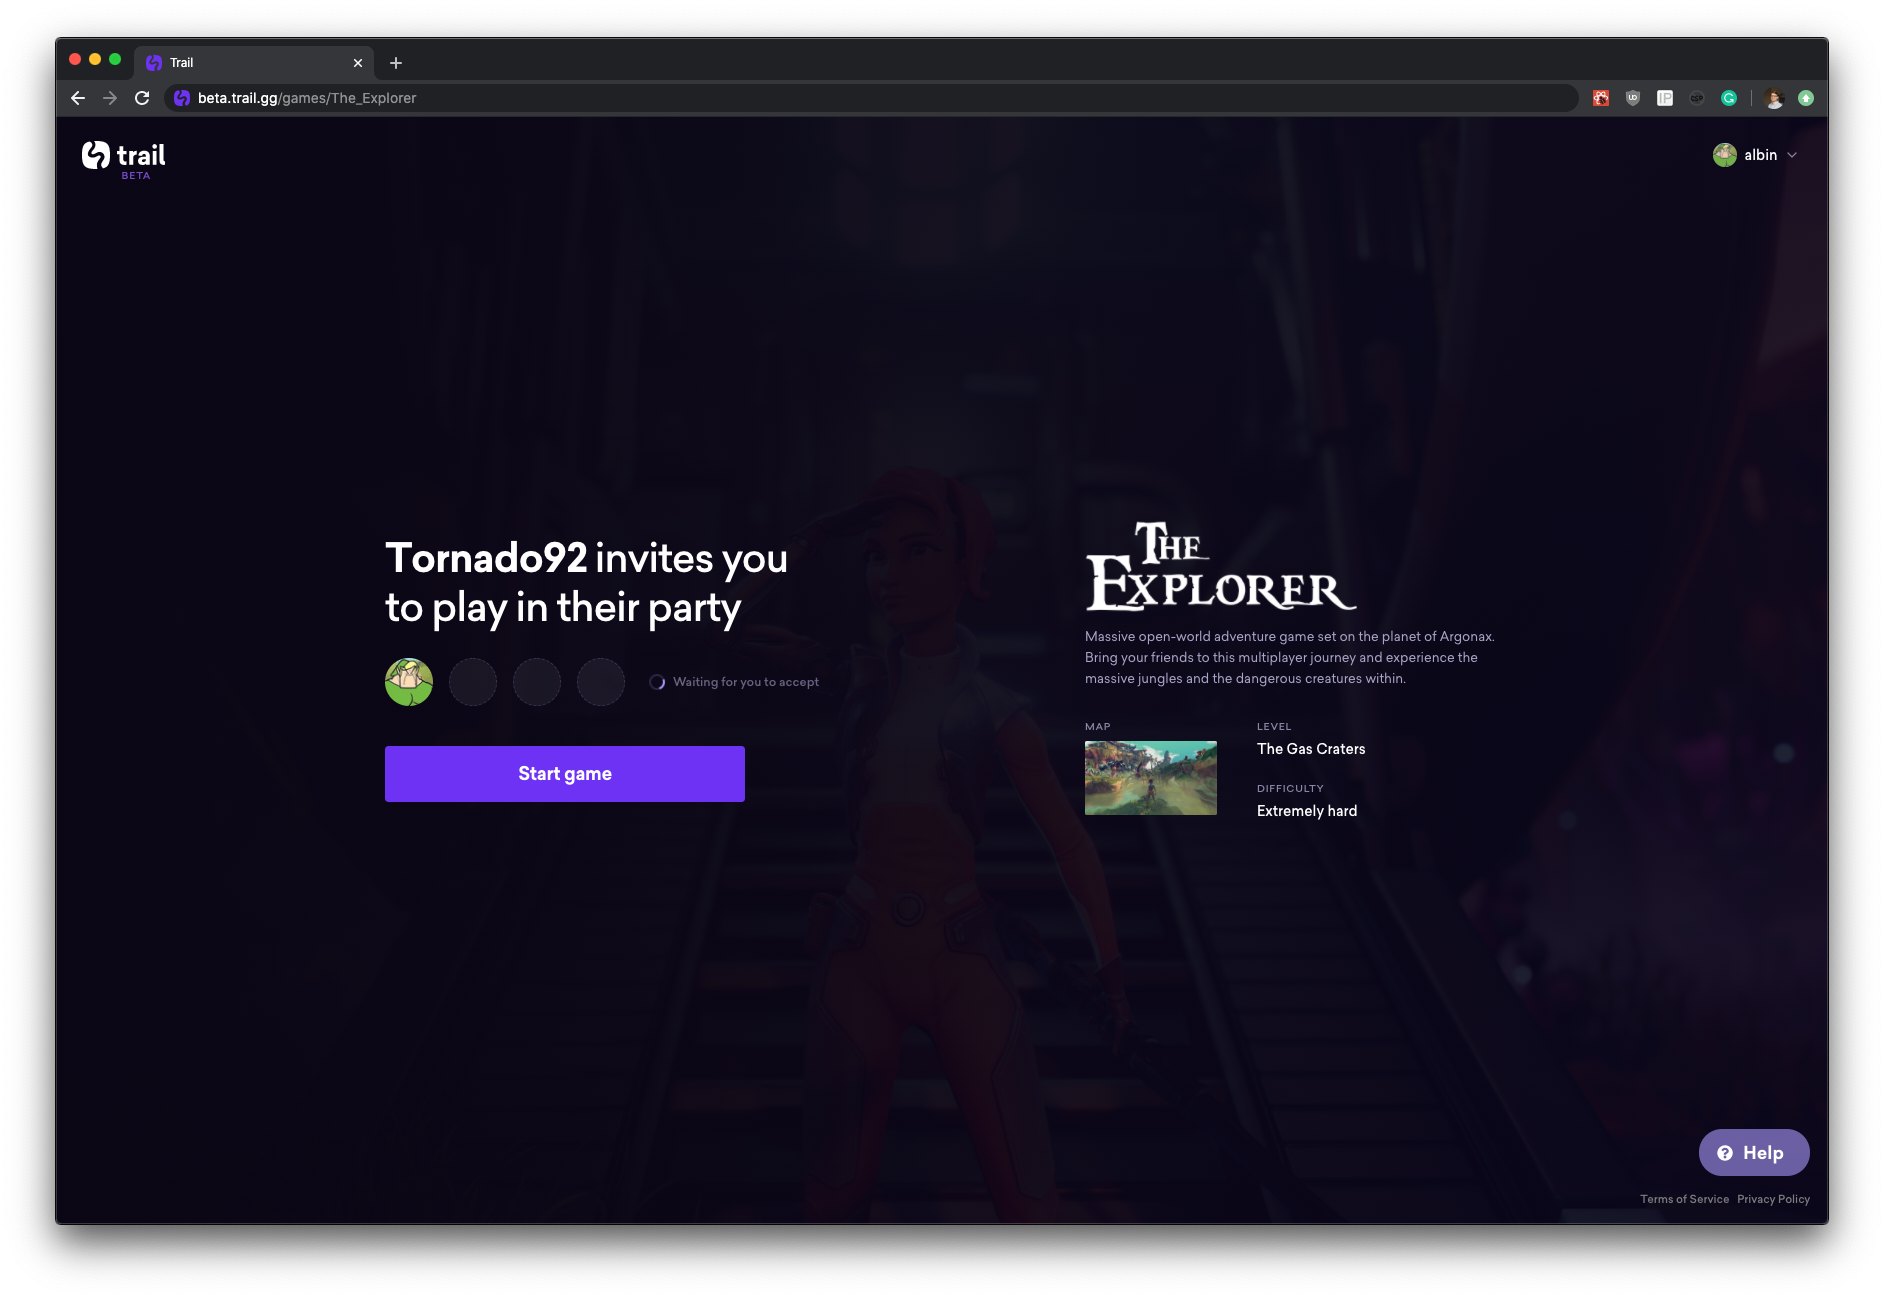 Landing page shown to incoming players.